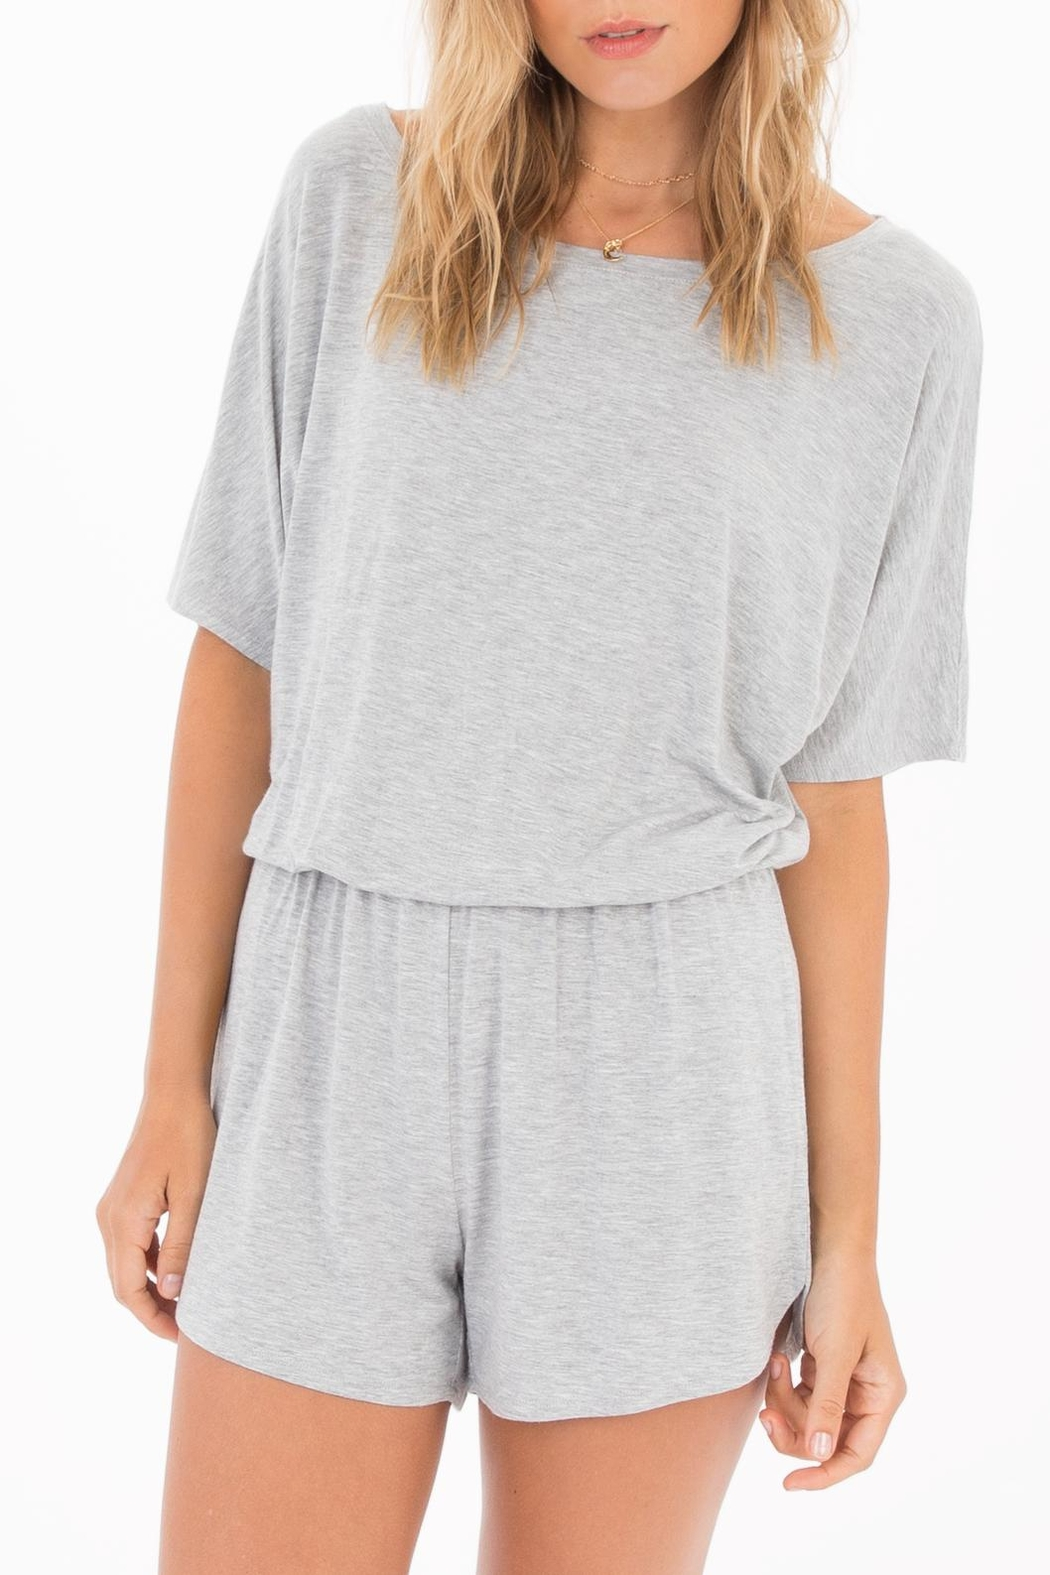 Apricot Lane Emi Jersey Romper - Front Cropped Image